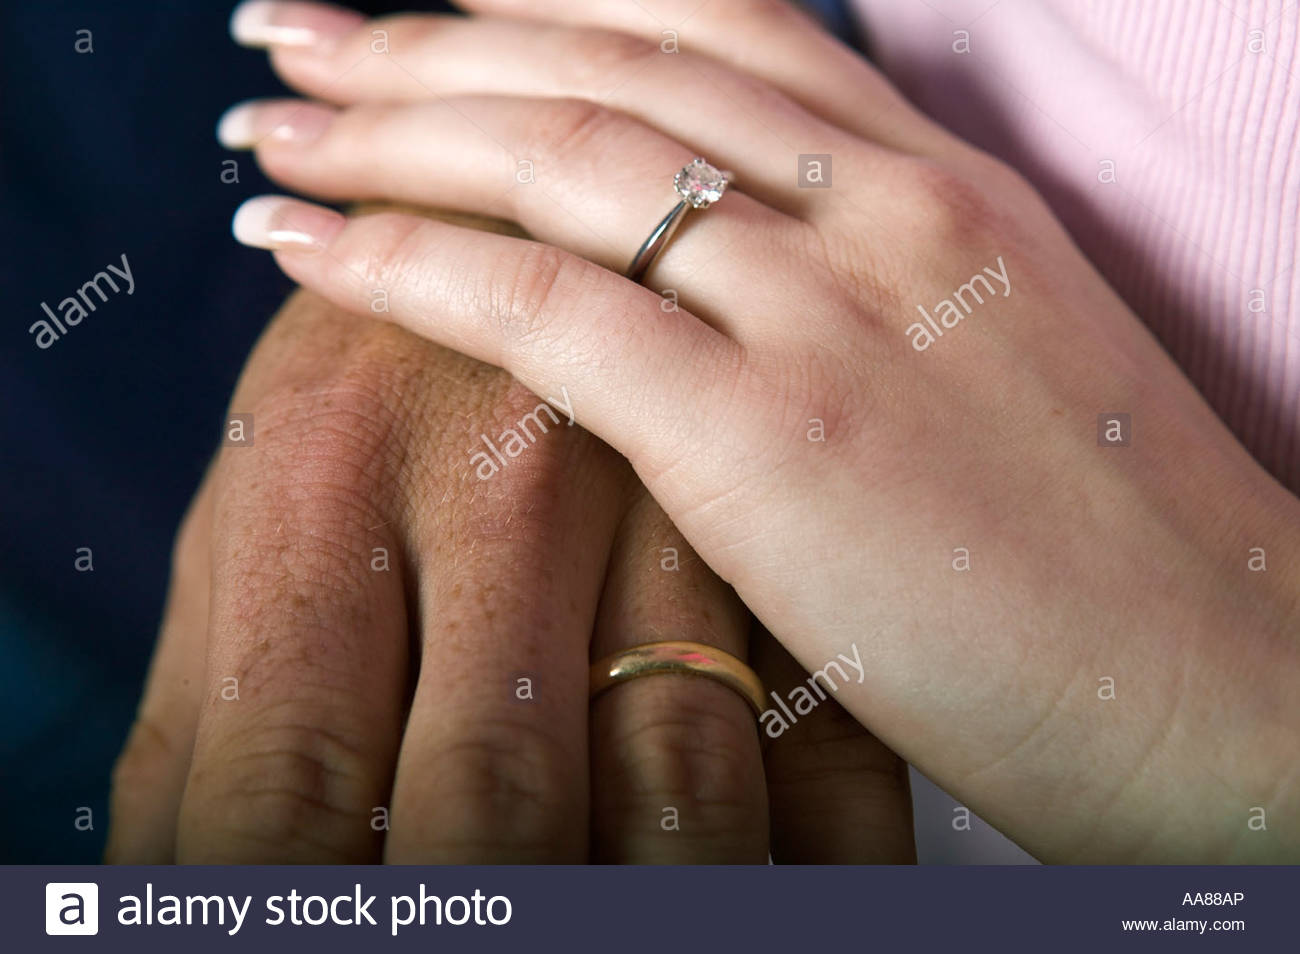 Couple wearing wedding rings holding hands stock photo 12546813 alamy couple wearing wedding rings holding hands junglespirit Gallery